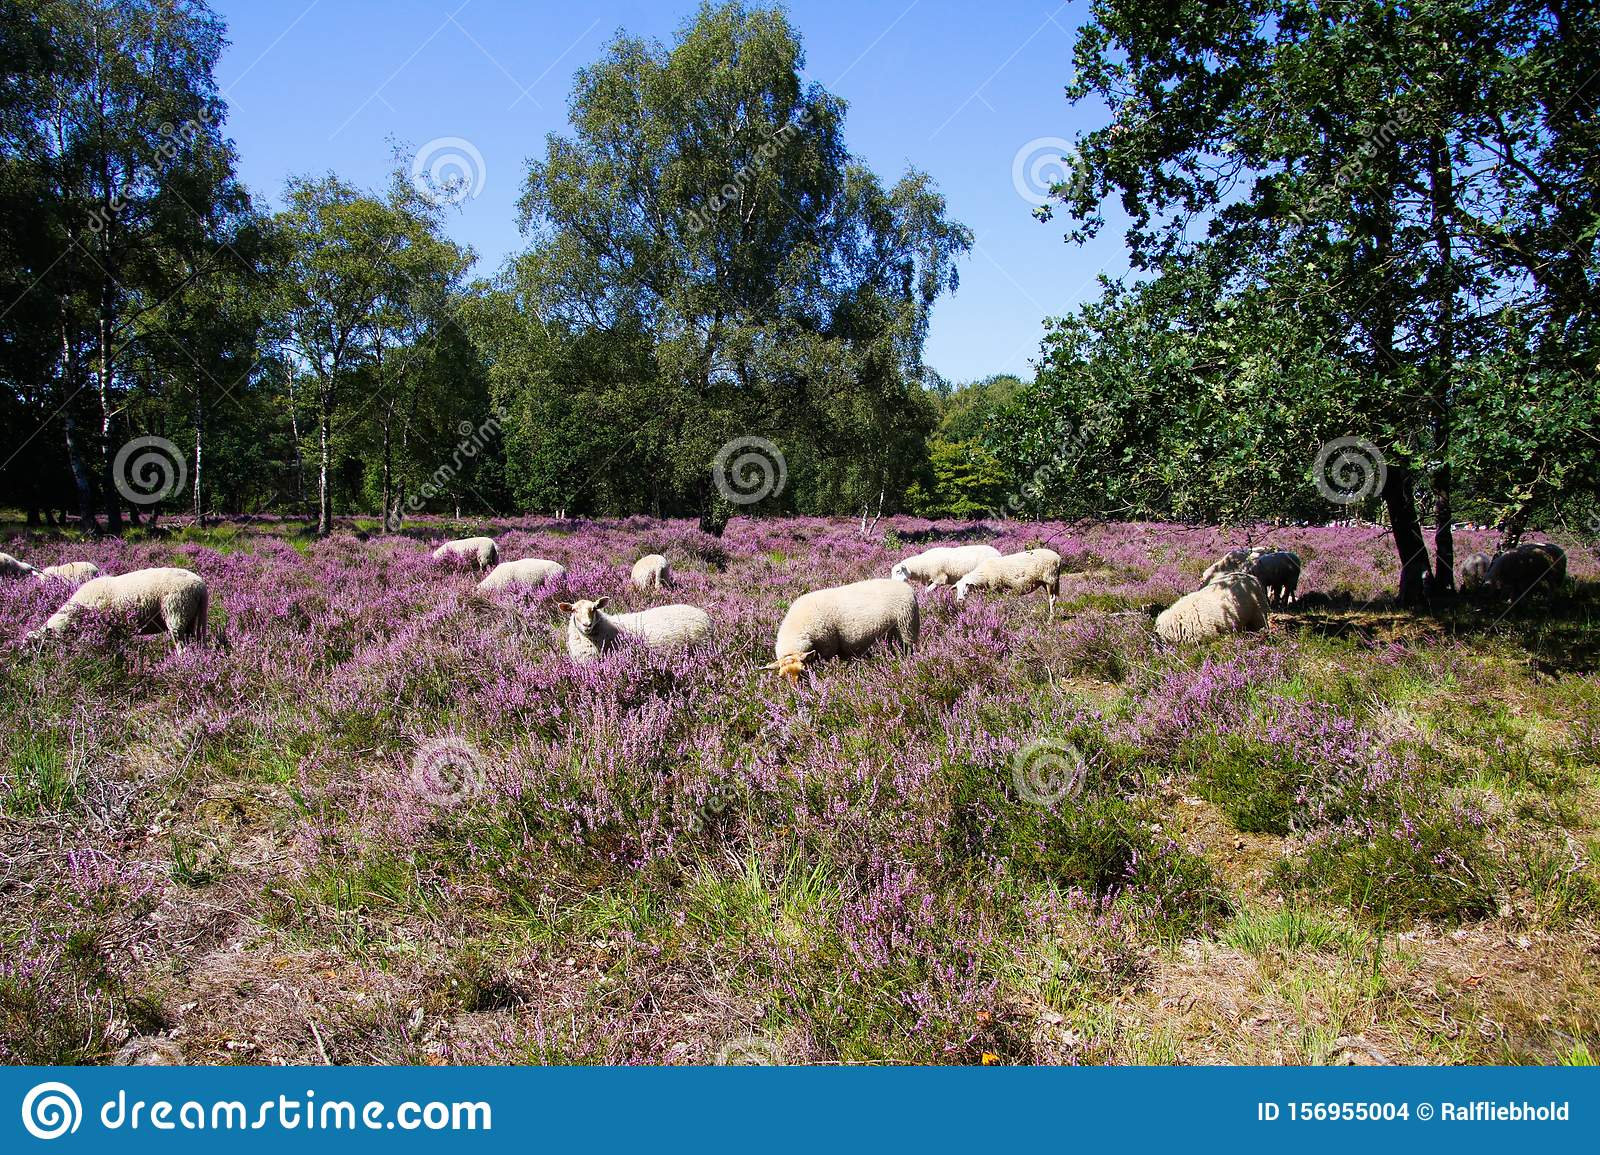 View on herd of sheep grazing in glade of dutch forest heathland with purple blooming heather erica plants Ericaceae